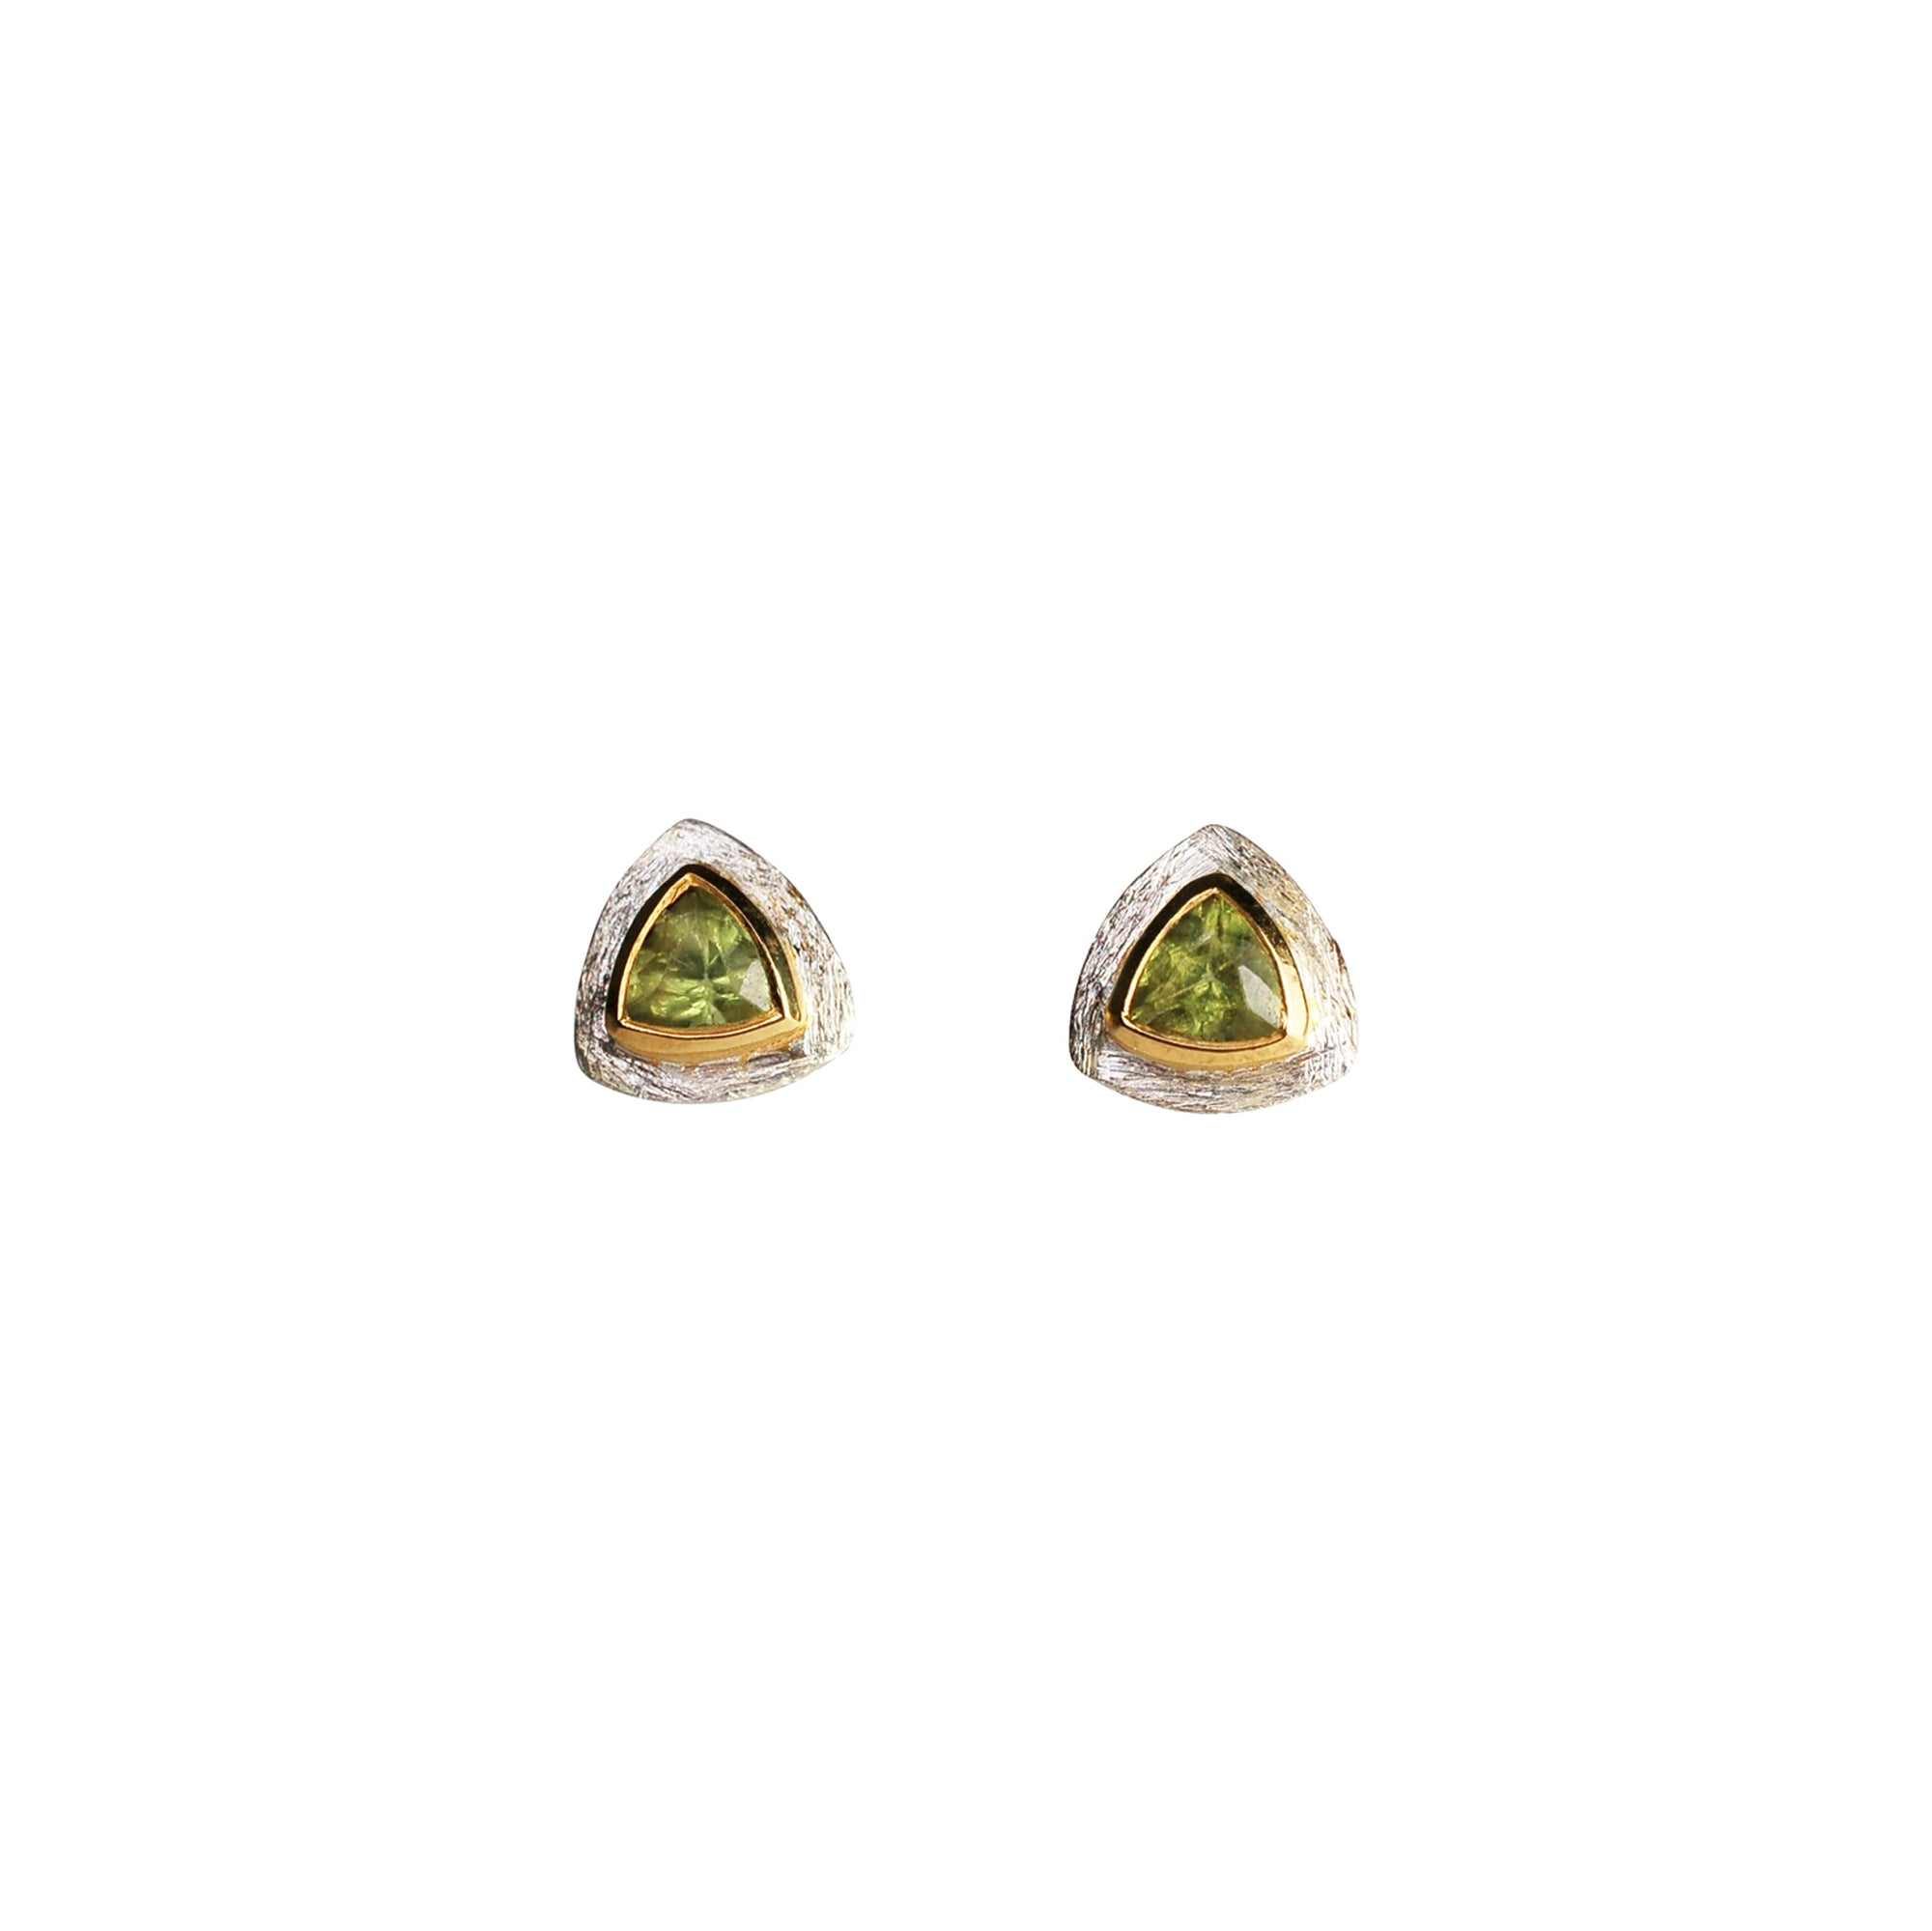 media jewelers fine by gold raven michael jewelry peridot earrings yellow diamond stud